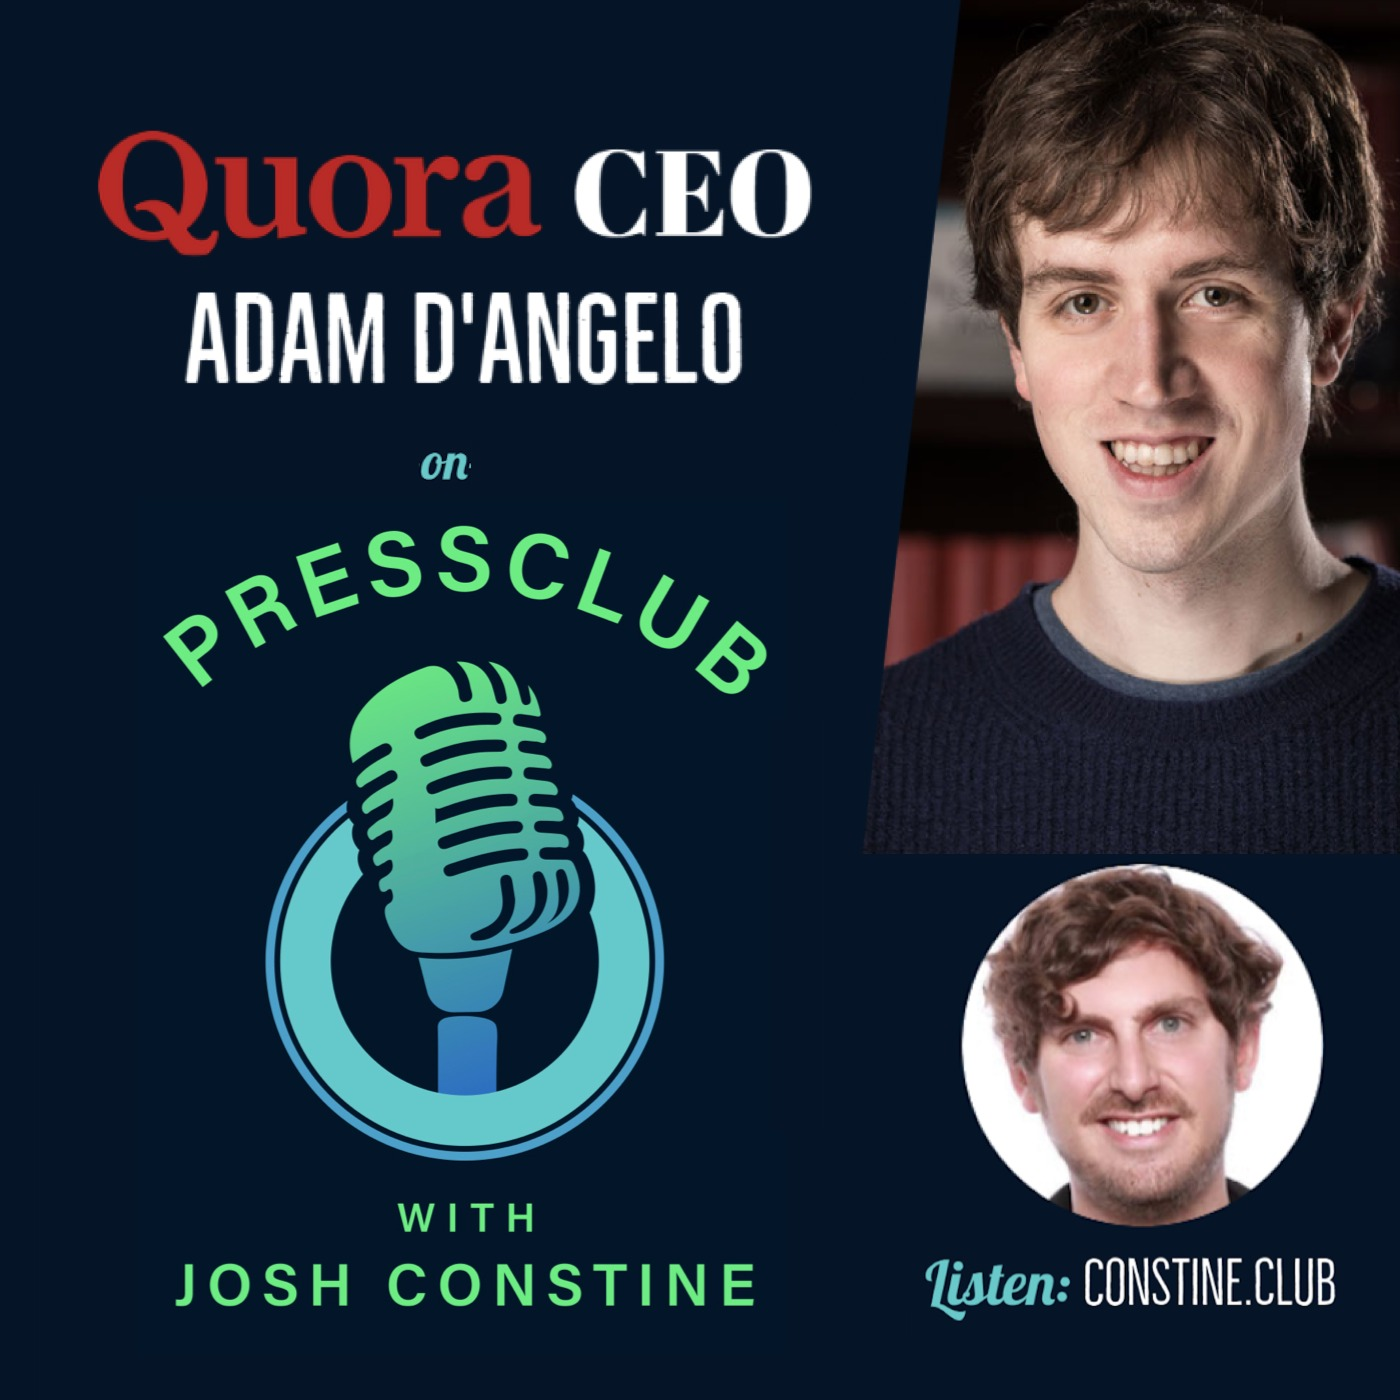 Fee or free: The Future Of Knowledge with Q&A Site Quora's CEO Adam D'Angelo